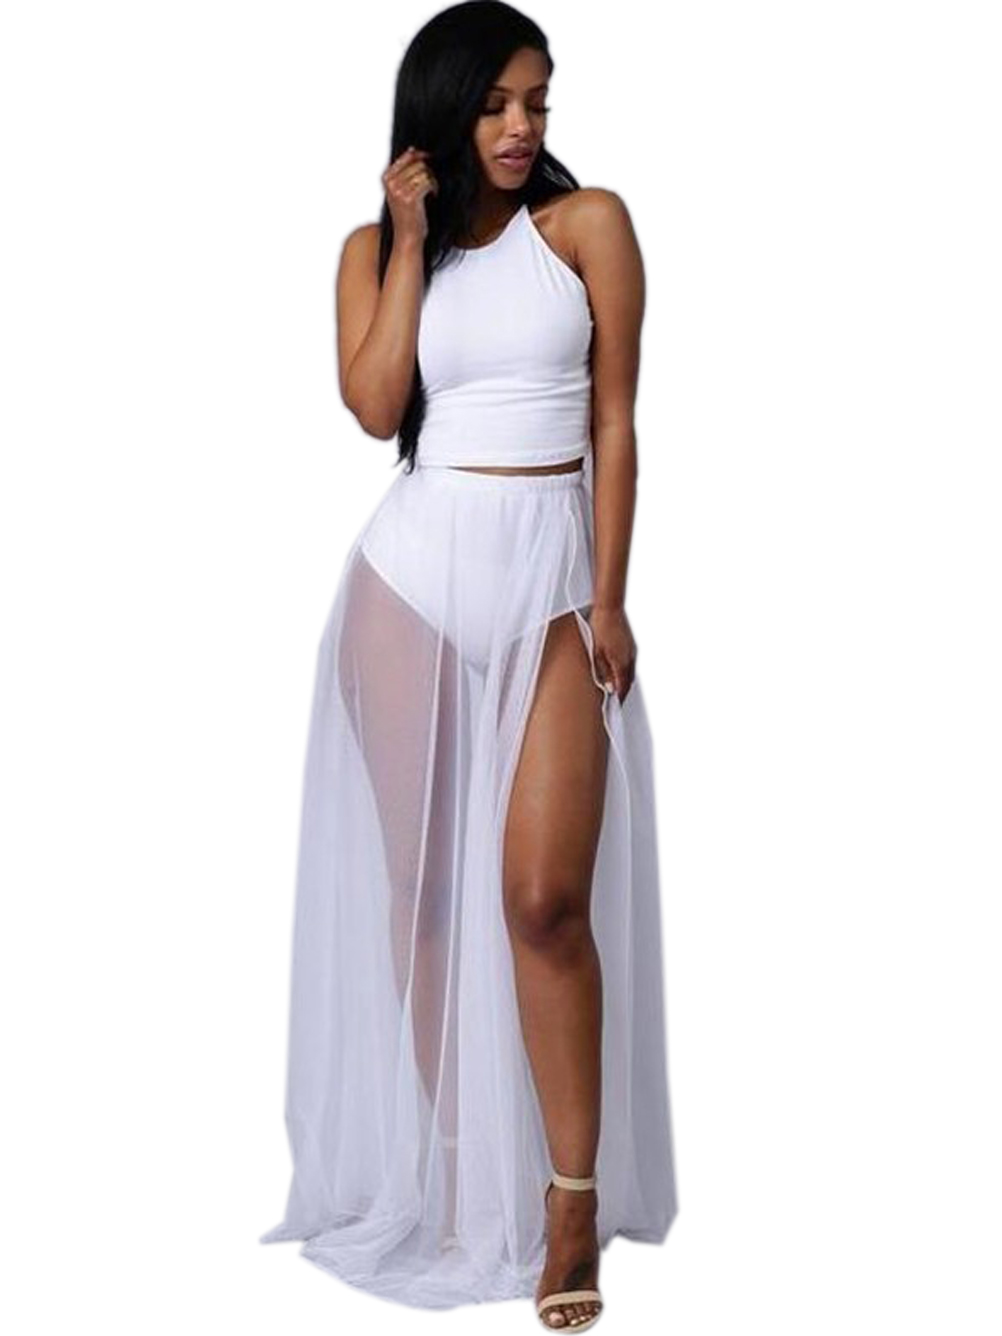 font b Gauze b font See Through Dress High Side Slit Two Piece Women font gauze clothing promotion shop for promotional gauze clothing on,B Gauze Womens Clothing